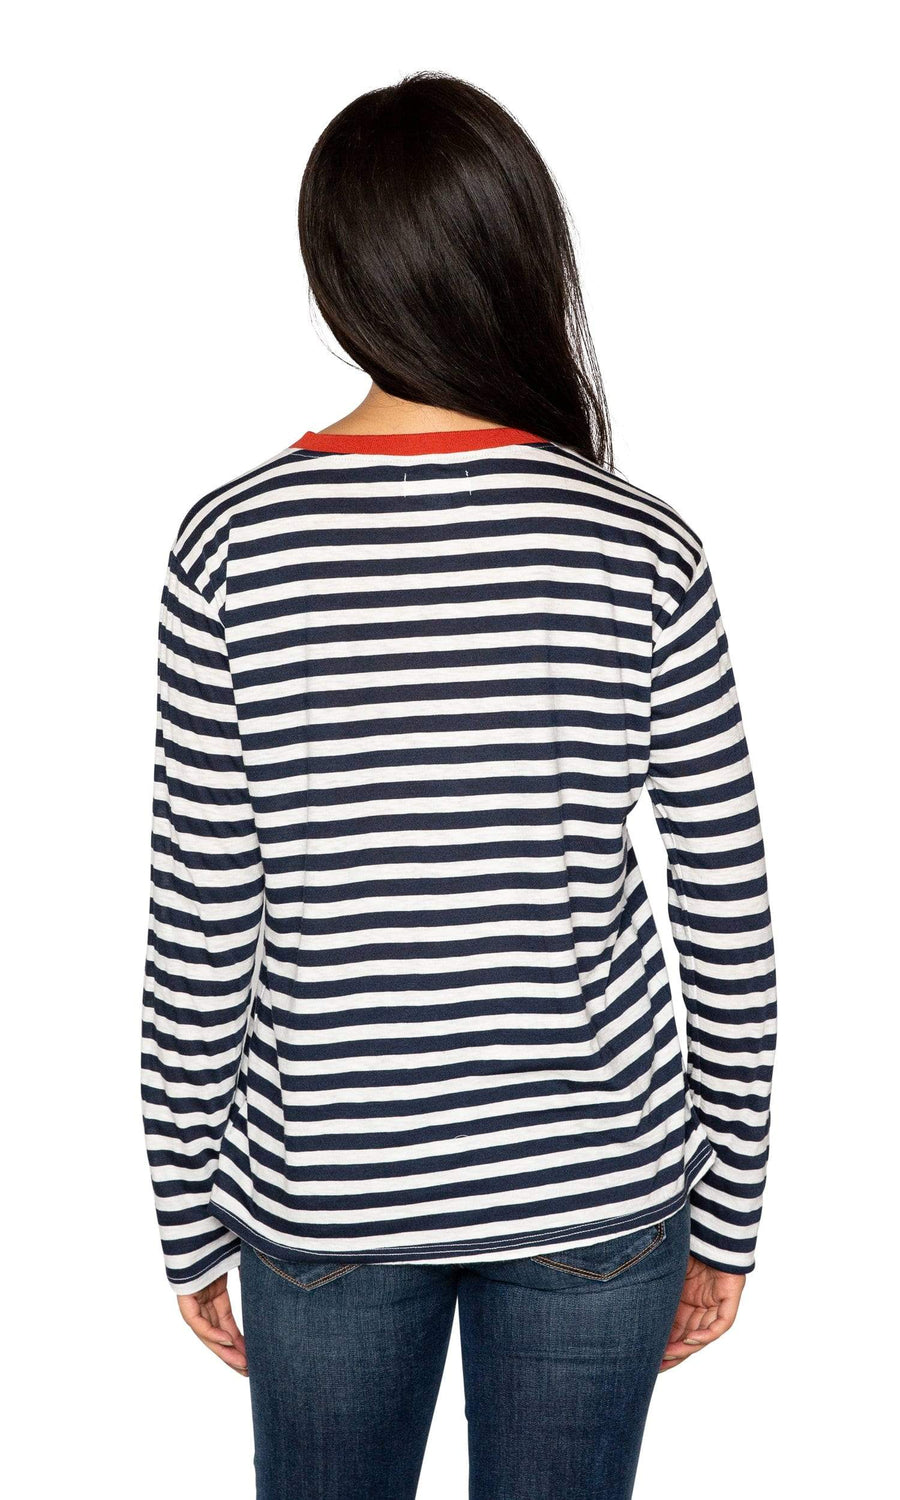 Velvet by Graham & Spencer Renny Slub Knit Stripe Long Sleeve Tee